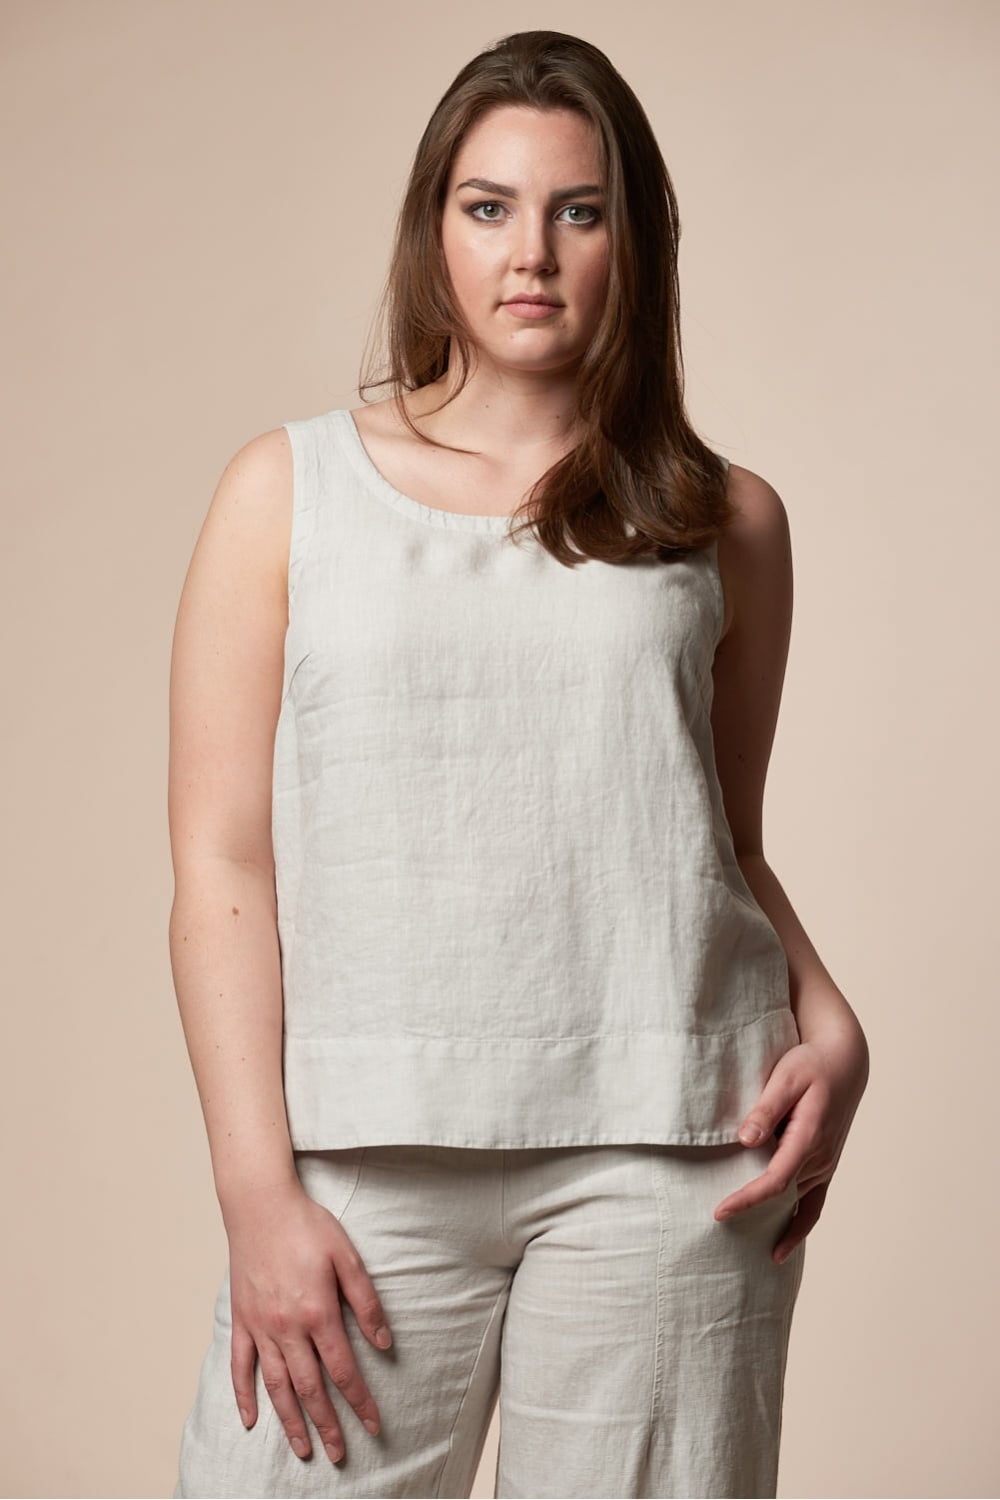 Shop Online at optimizings.cf for the Latest Womens Linen Sleeveless Shirts, Tunics, Blouses, Halter Tops & More Womens Tops. FREE SHIPPING AVAILABLE! Macy's Presents: The Edit- A curated mix of fashion and inspiration Check It Out. Free Shipping with $99 purchase + .